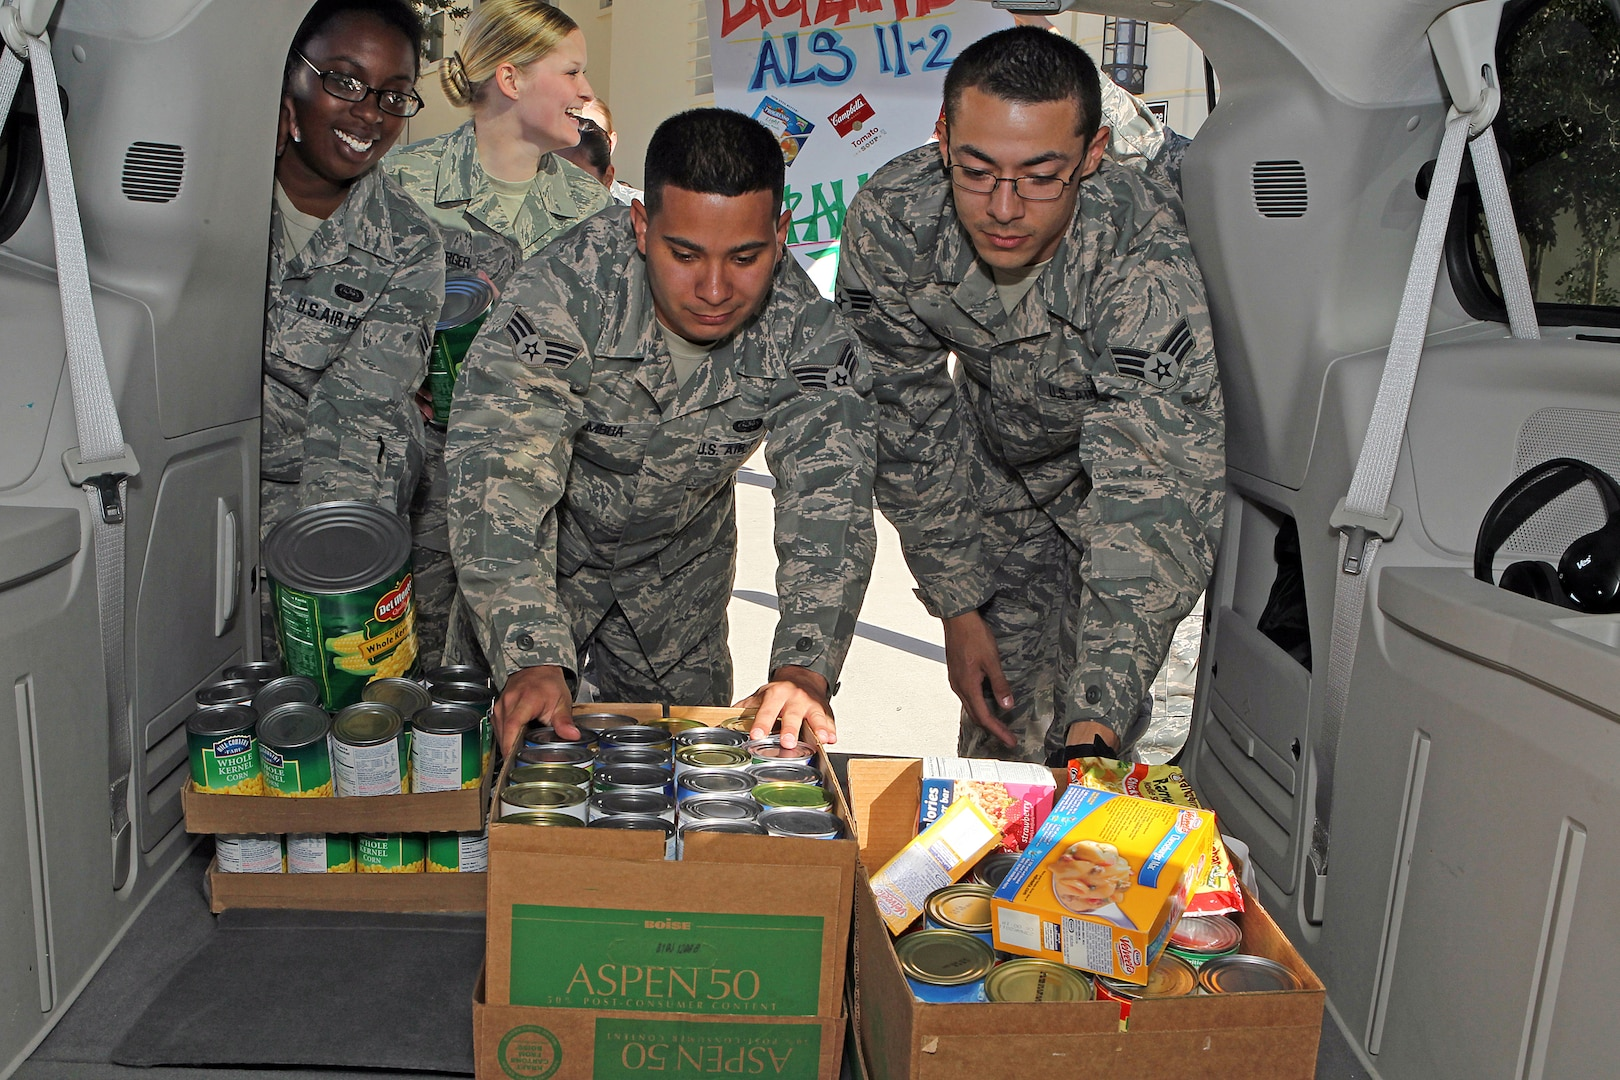 Senior Airmen Jeanette Collins, Jeremy Cook and Danny Gamboa load a van Dec. 9 with food items collected by Airman Leadership School for the San Antonio Food Bank. Members of ALS Class 11-2 collected more than 1,100 pounds of food to support needy families in the community. (U.S. Air Force photo/Antonio Morano)